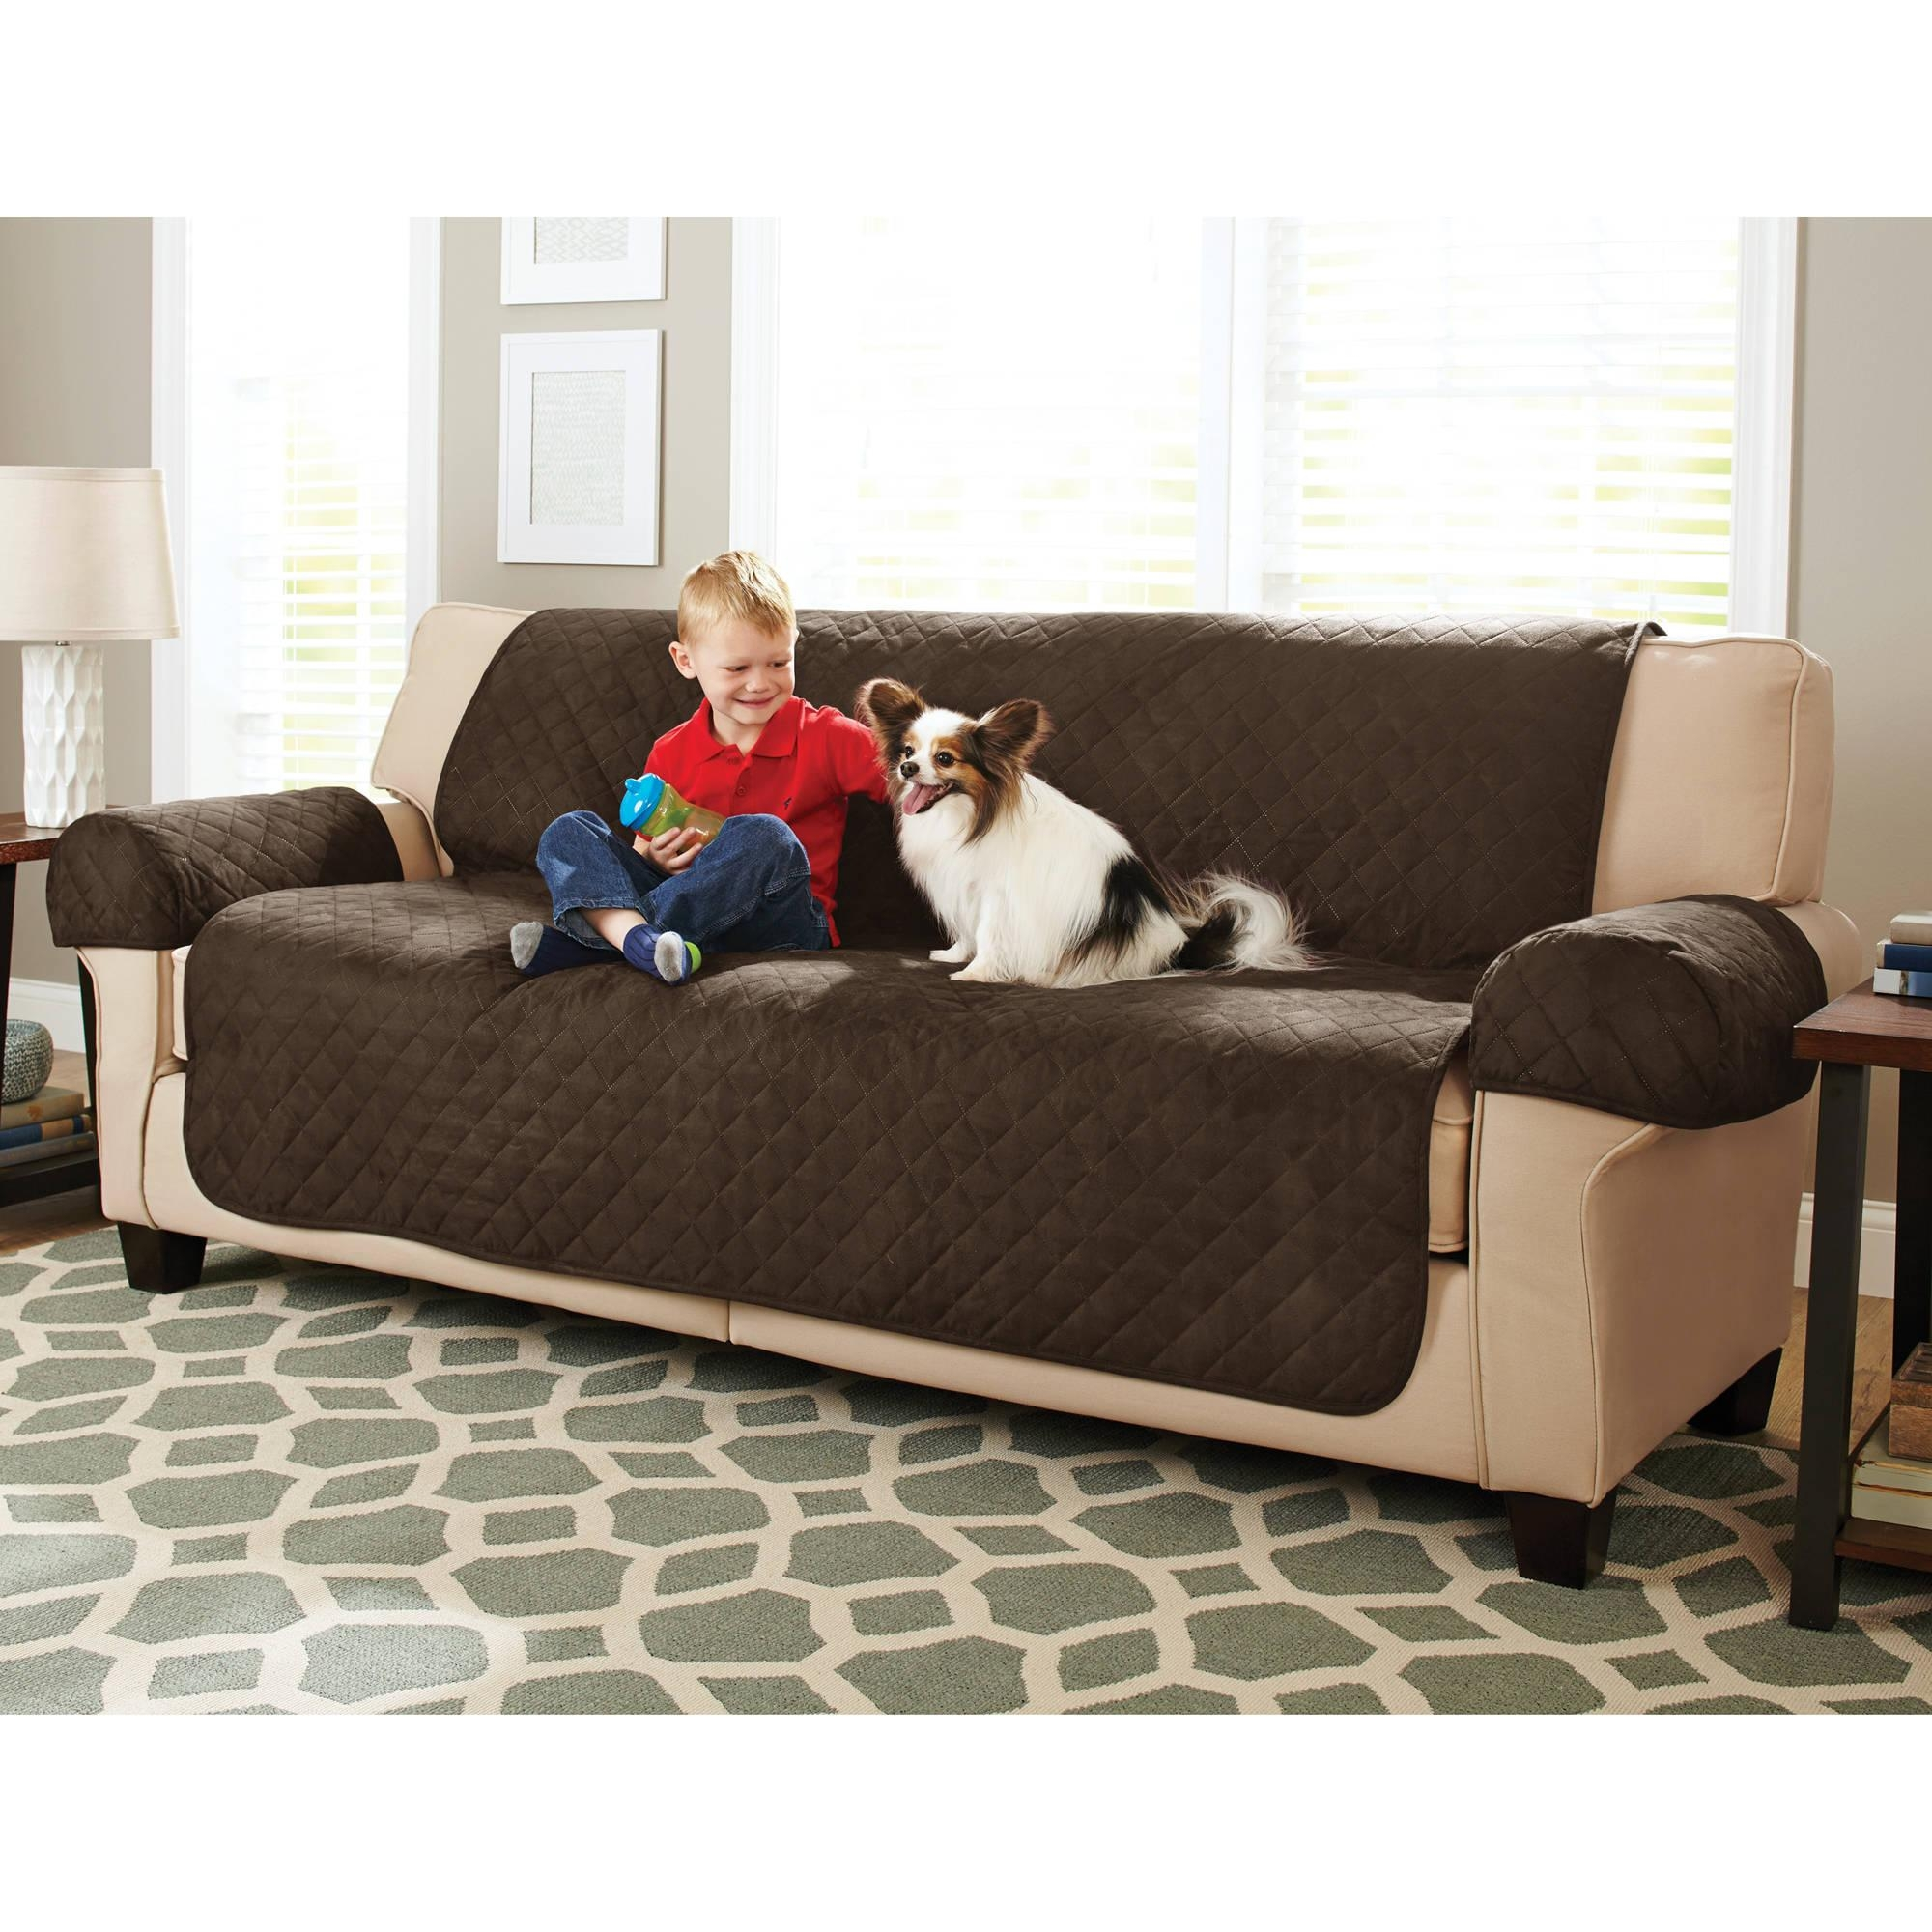 Better Homes And Gardens Waterproof Non Slip Faux Suede Pet Inside Dog Sofas And Chairs (Image 2 of 20)